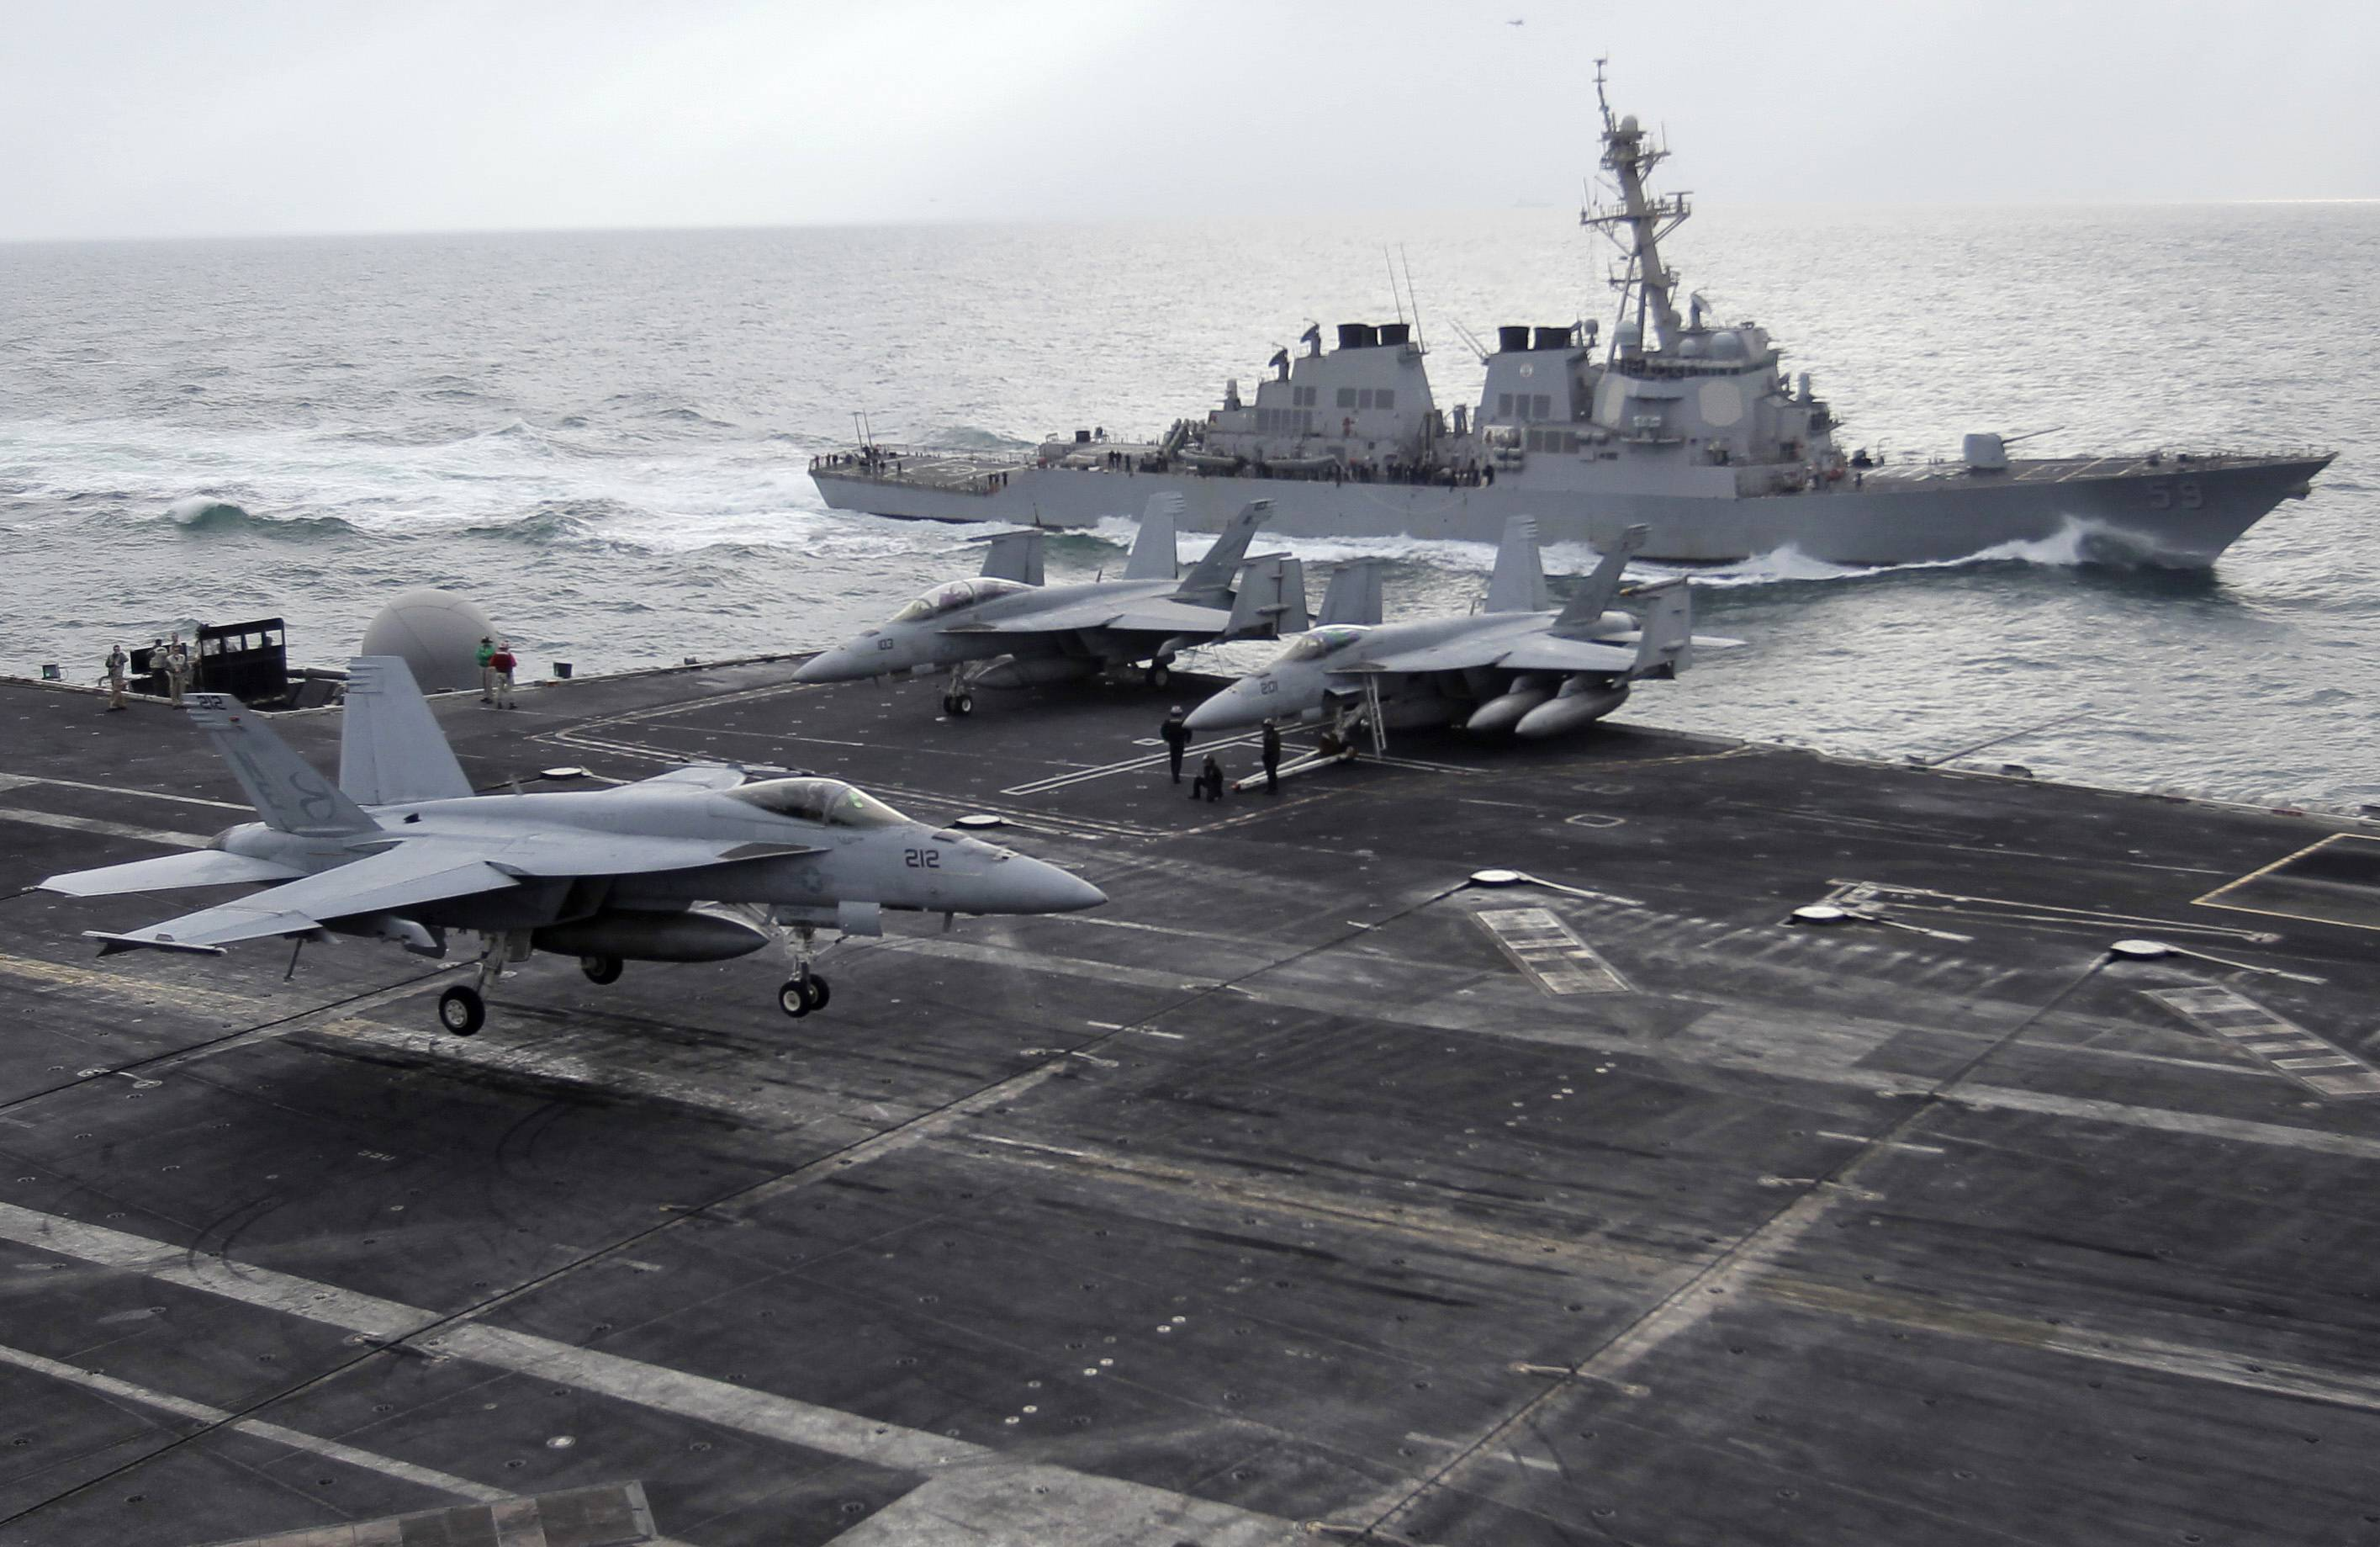 Iran will target American aircraft carriers in the Persian Gulf should a war between the two countries ever break out, the naval chief of Iran's powerful Revolutionary Guard warned Tuesday as the country completes work on a large-scale mock-up of a U.S. carrier.